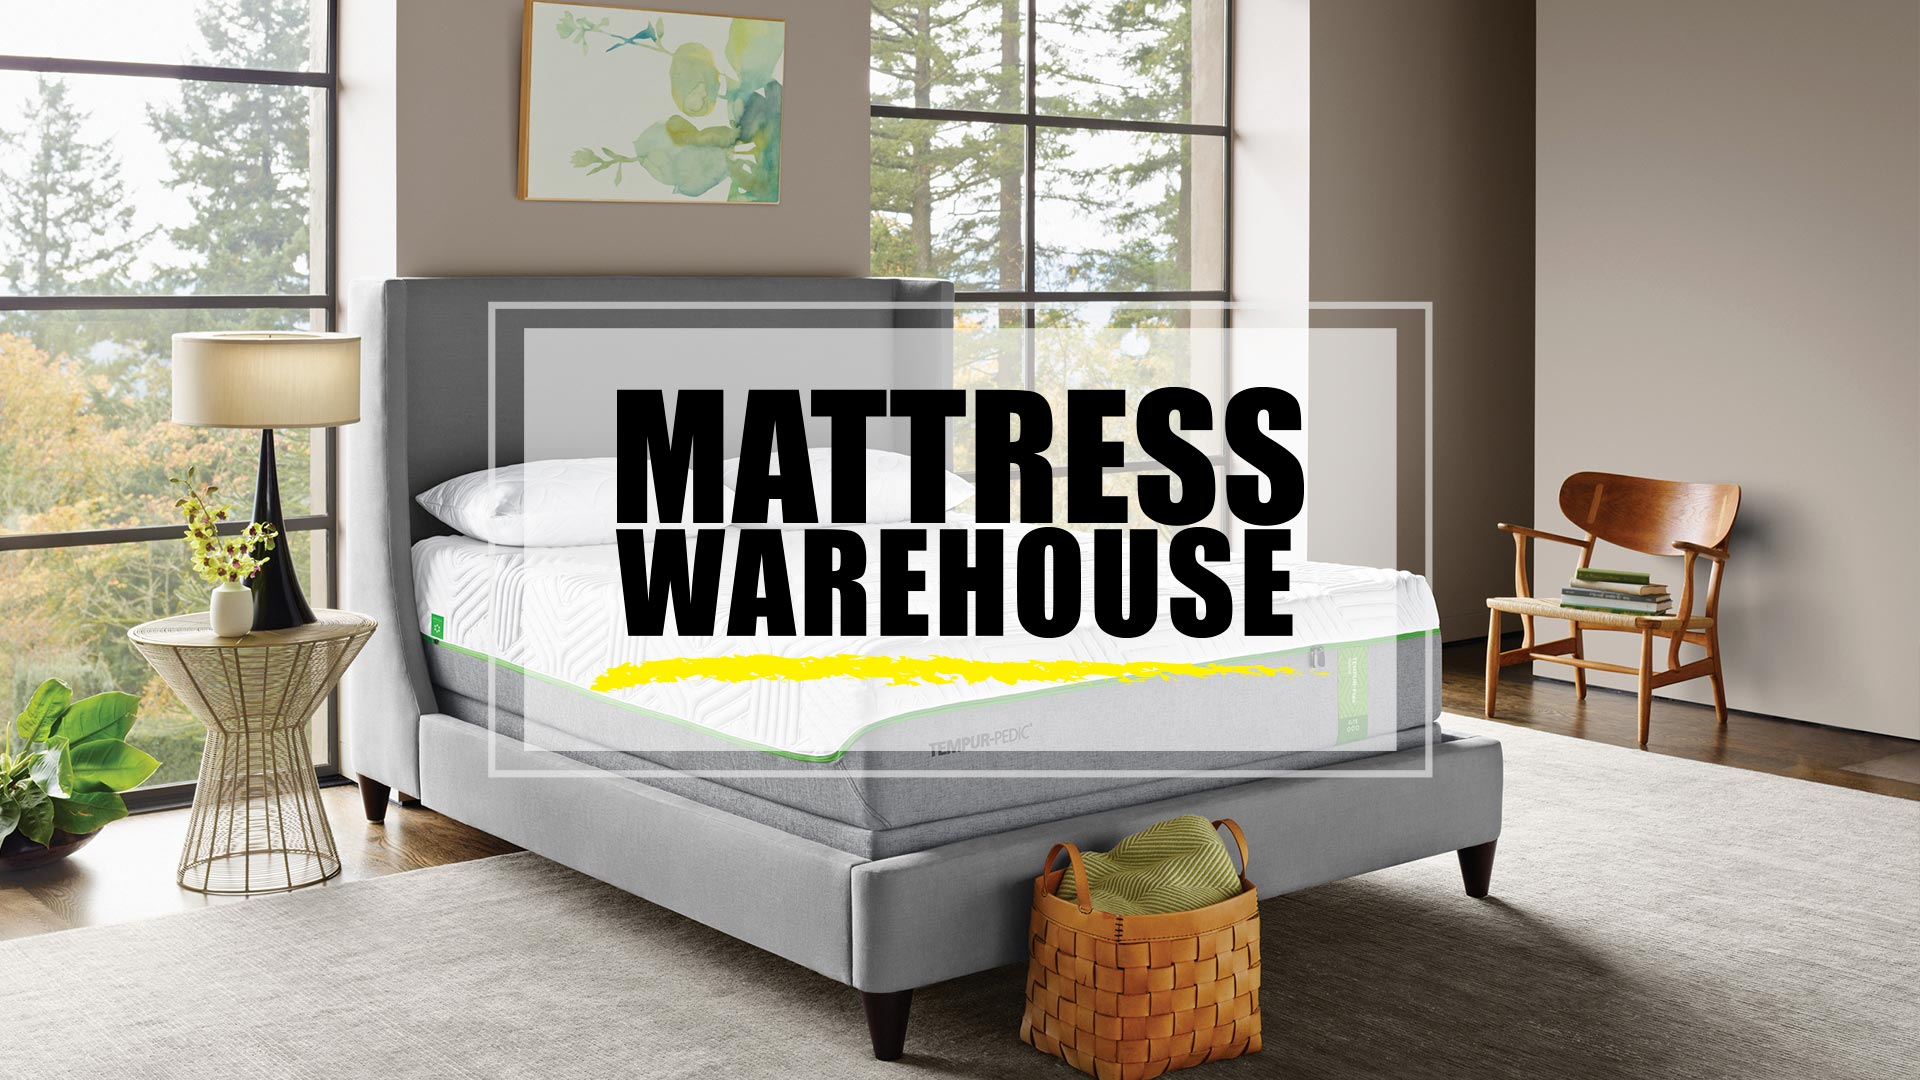 size mattresses collection foam s next pillow extensive featuring shop utah mattress generation memory store house warehouse a from our and com top brand with in full